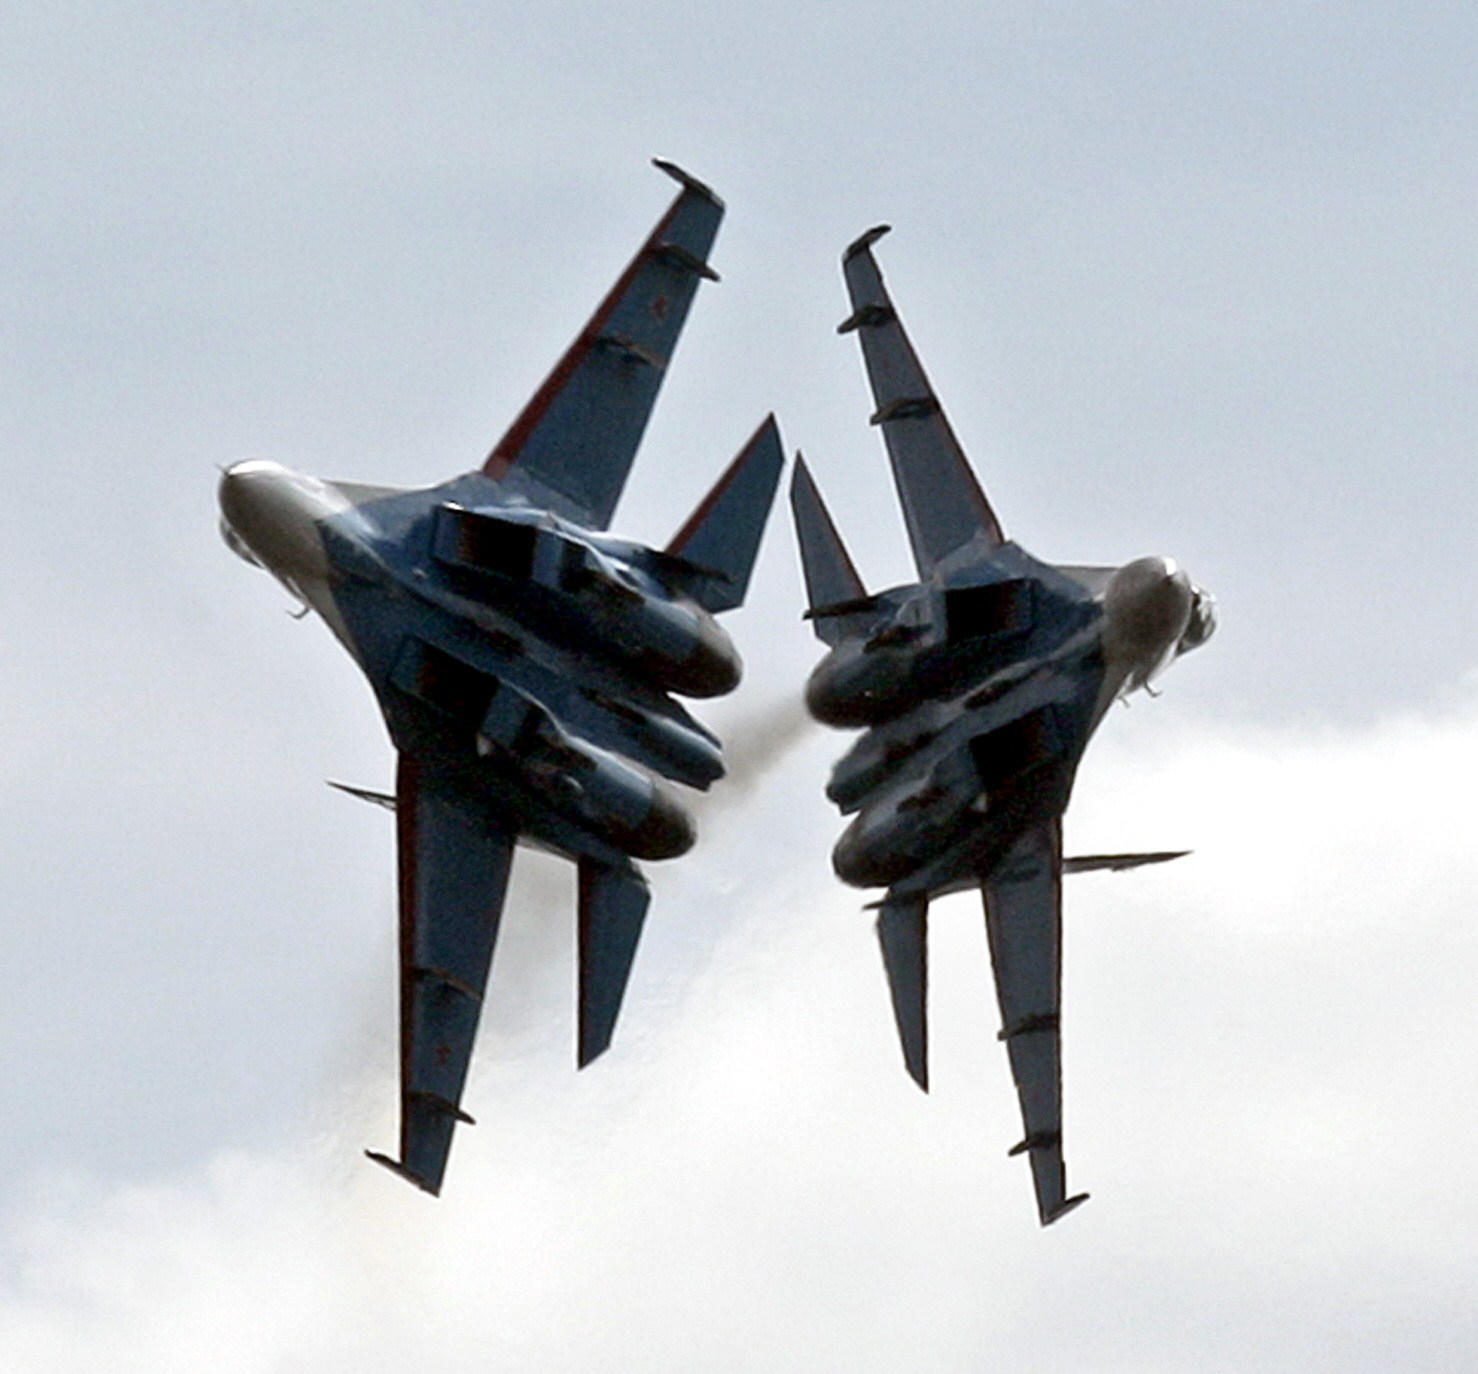 Russia fighter jet flies within 10 feet of U.S. Navy aircraft